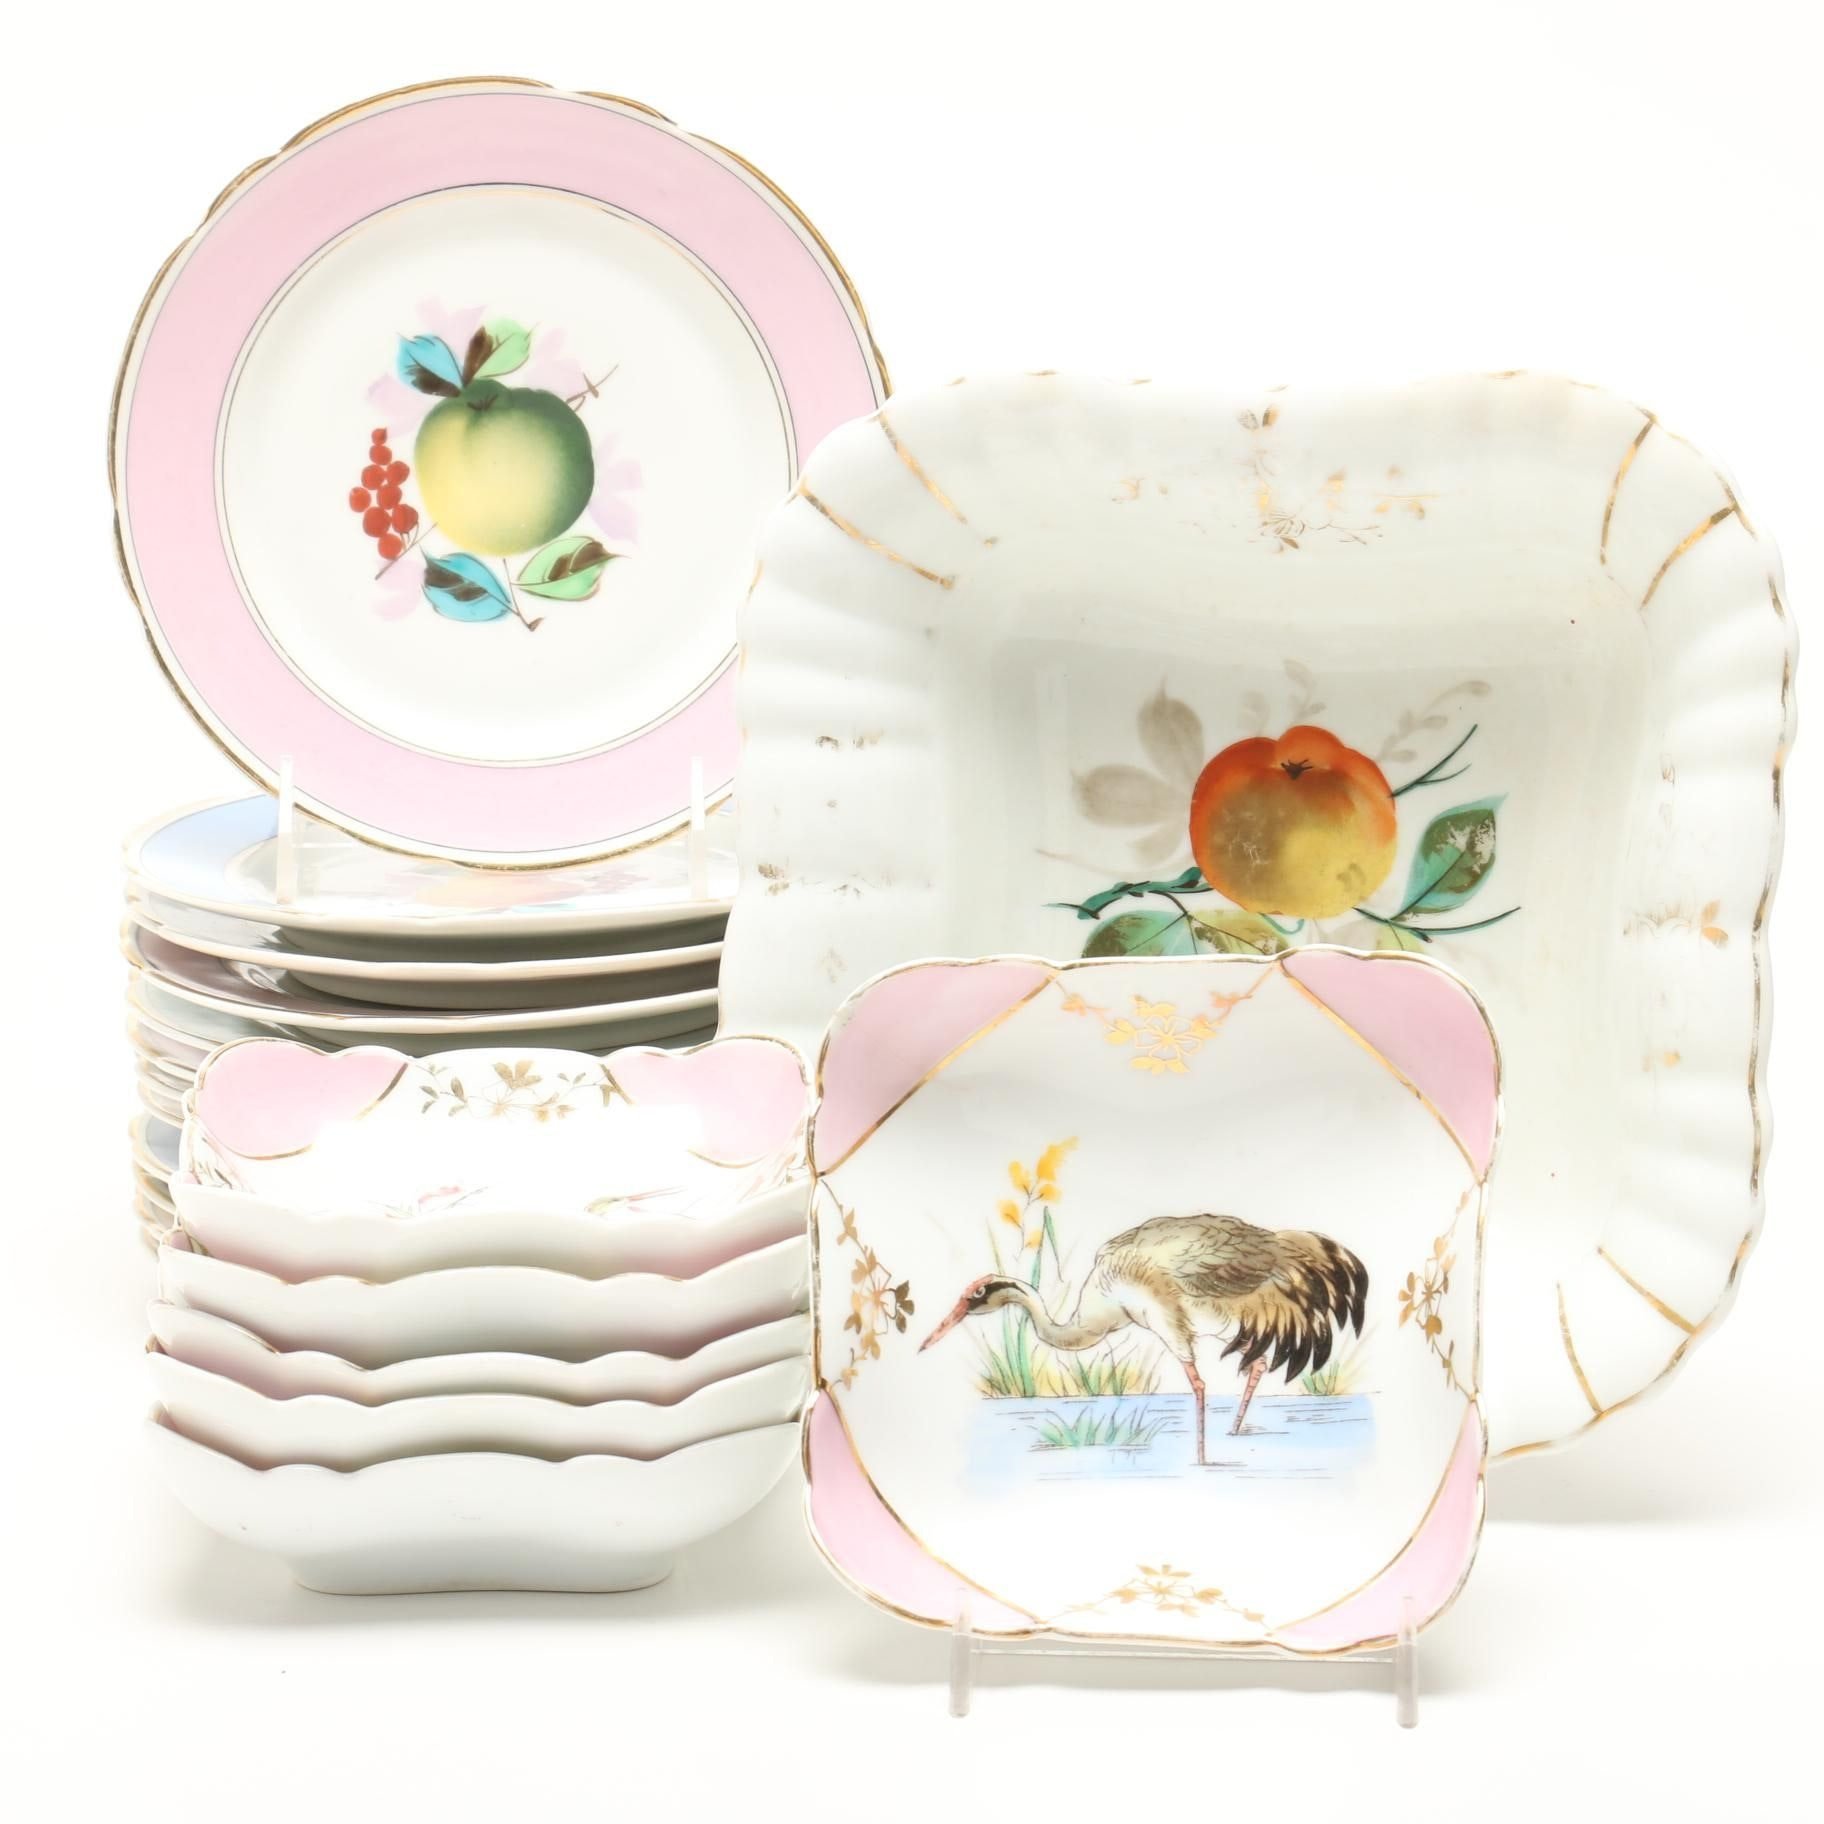 Decorative Desert Plates With Cranes and Fruit